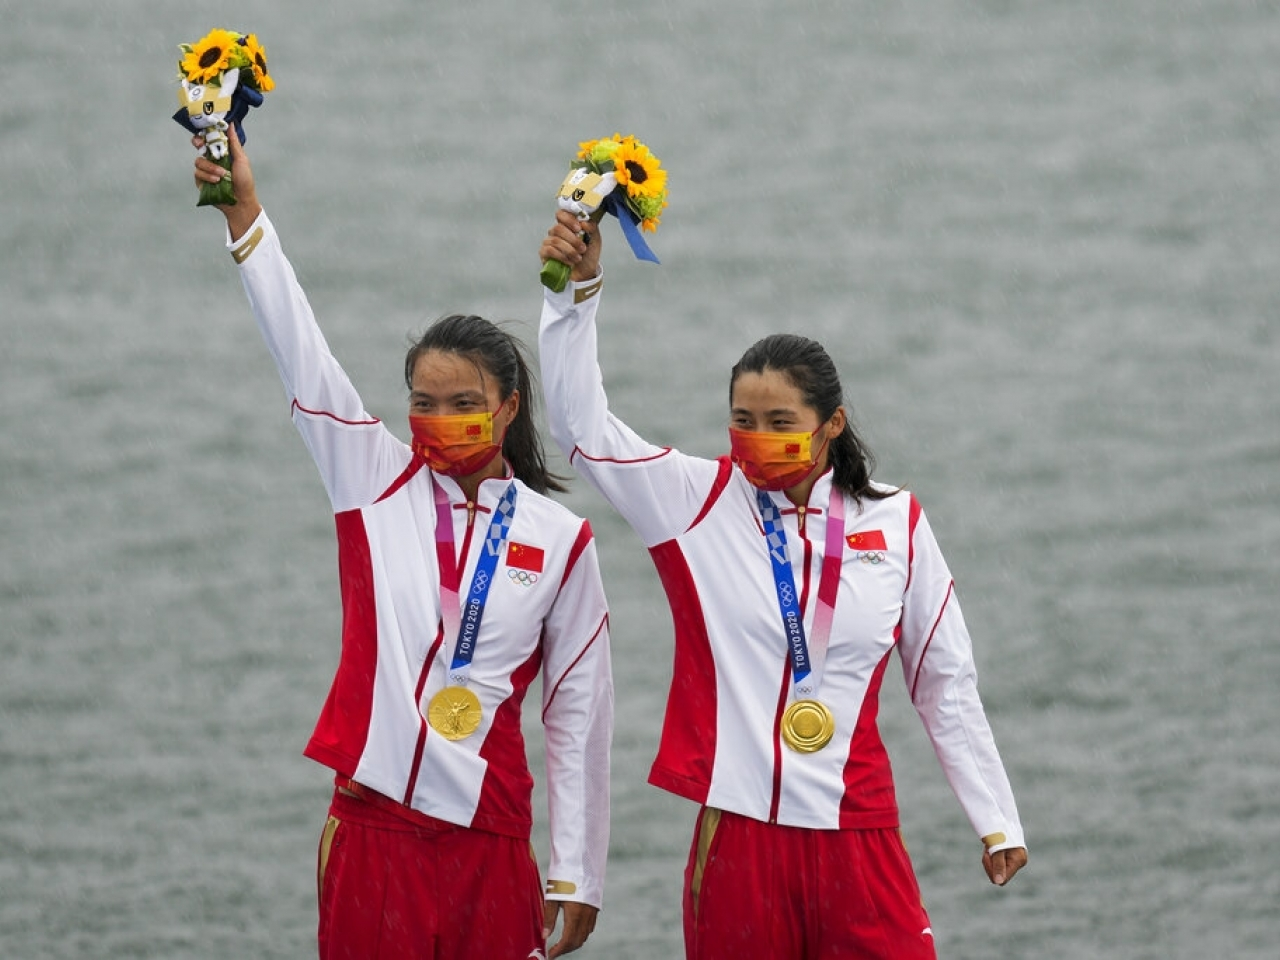 Delight on the podium for China's Xu Shixiao and Sun Mengya. Photo: AP